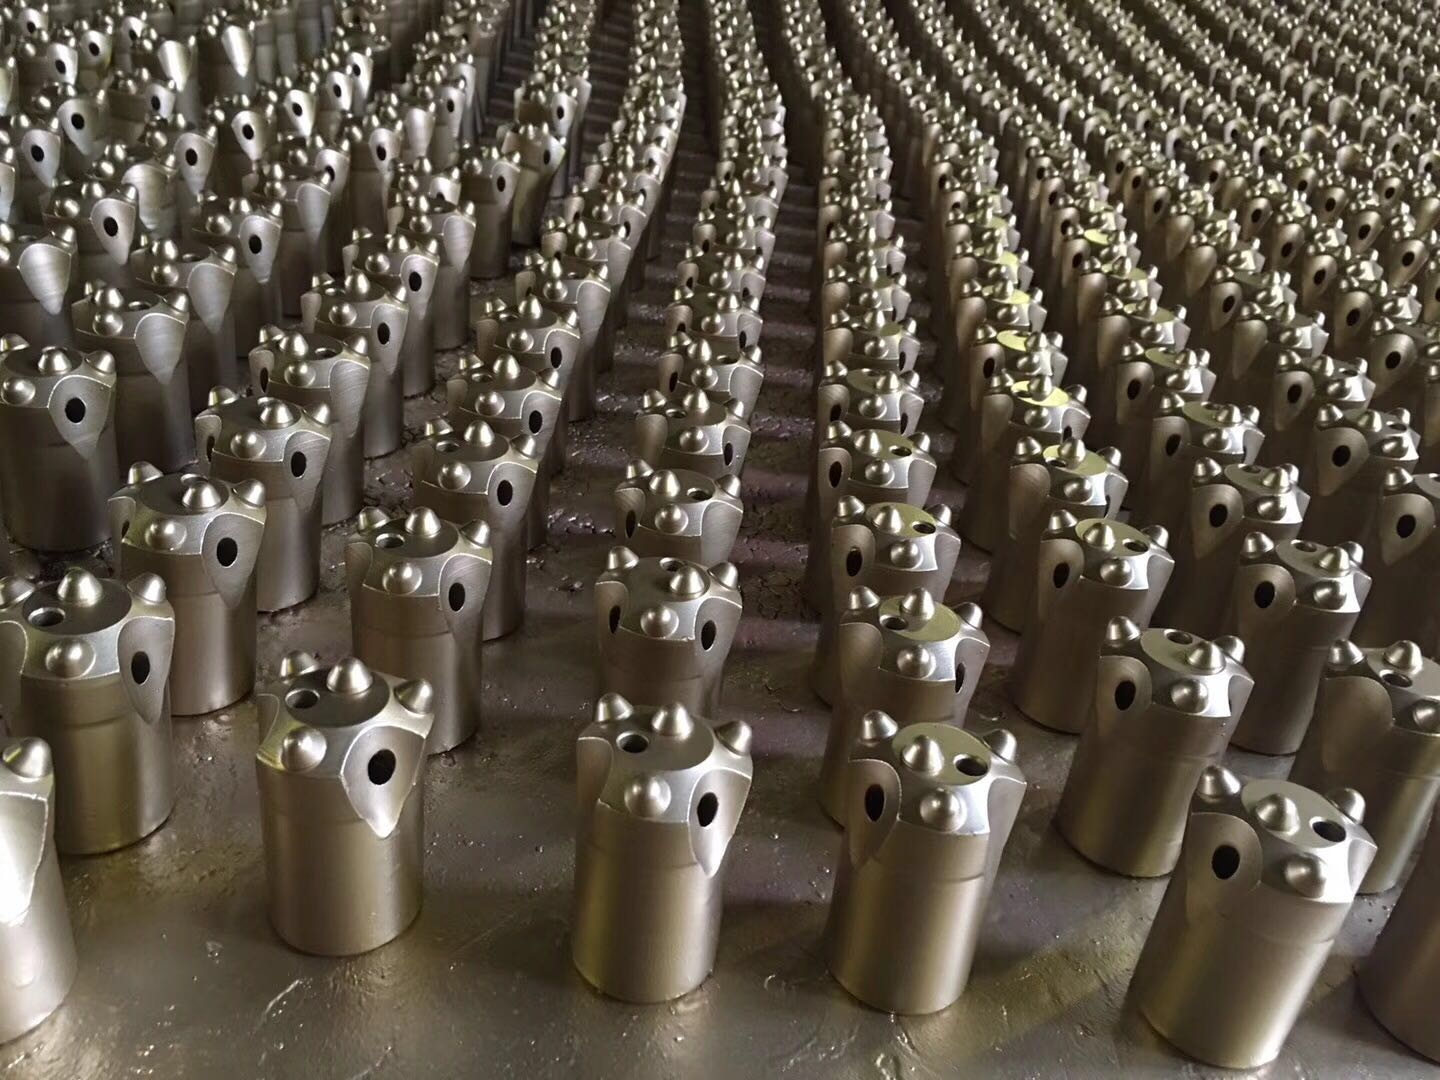 350pcs 7 degree 40mm taper button bits ordered by Peru clients